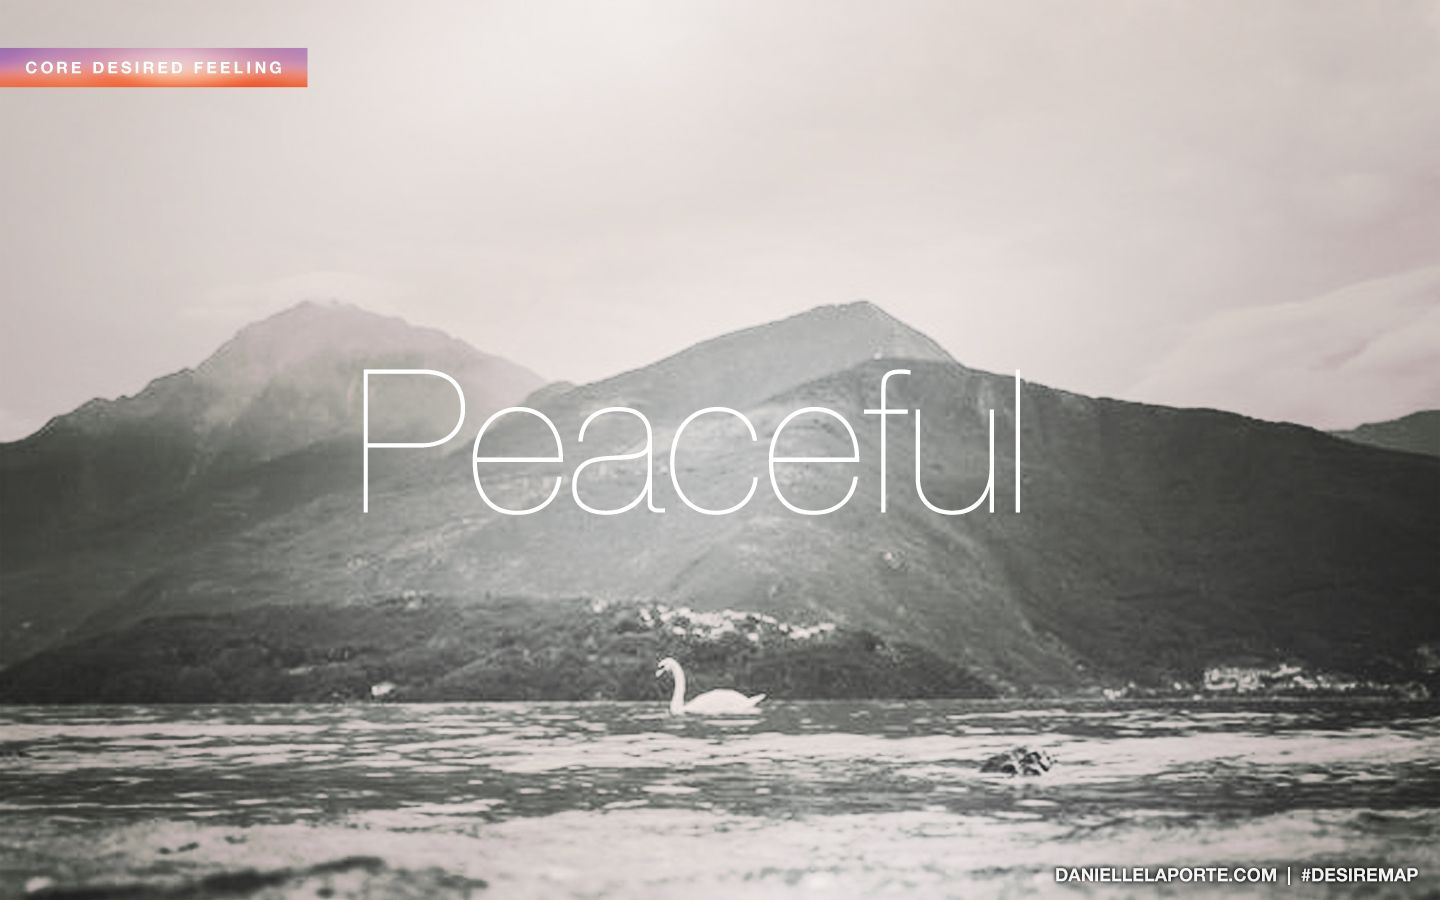 Peaceful - One of my Core Desired Feelings. How do you want to feel? #DesireMap